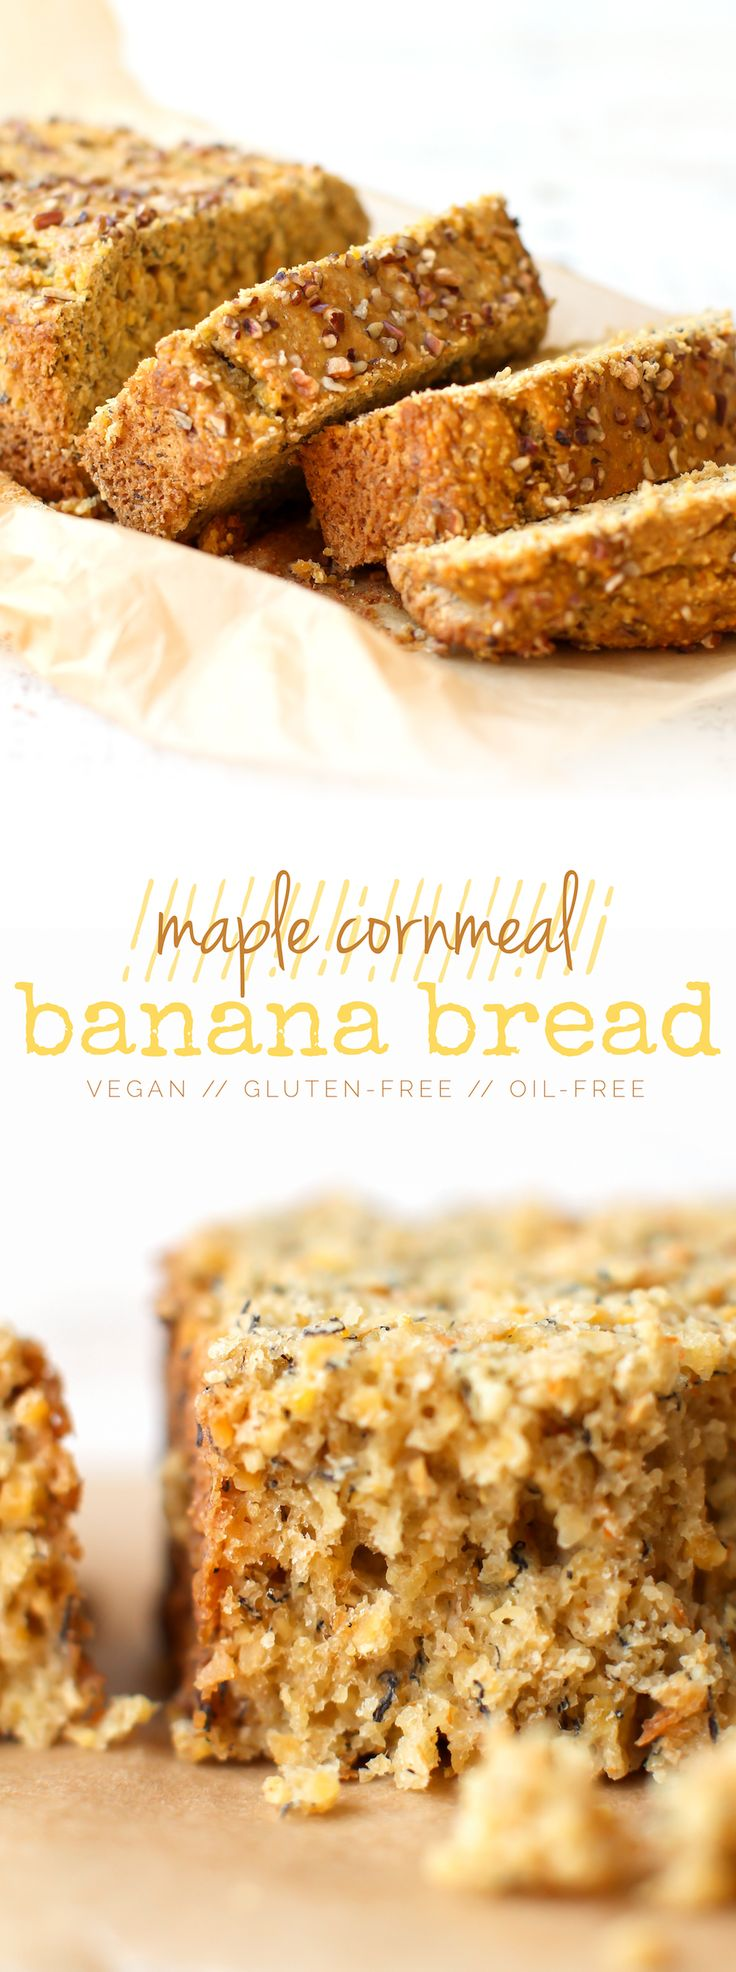 Maple Cornmeal Banana Bread #glutenfree #vegan #oilfree